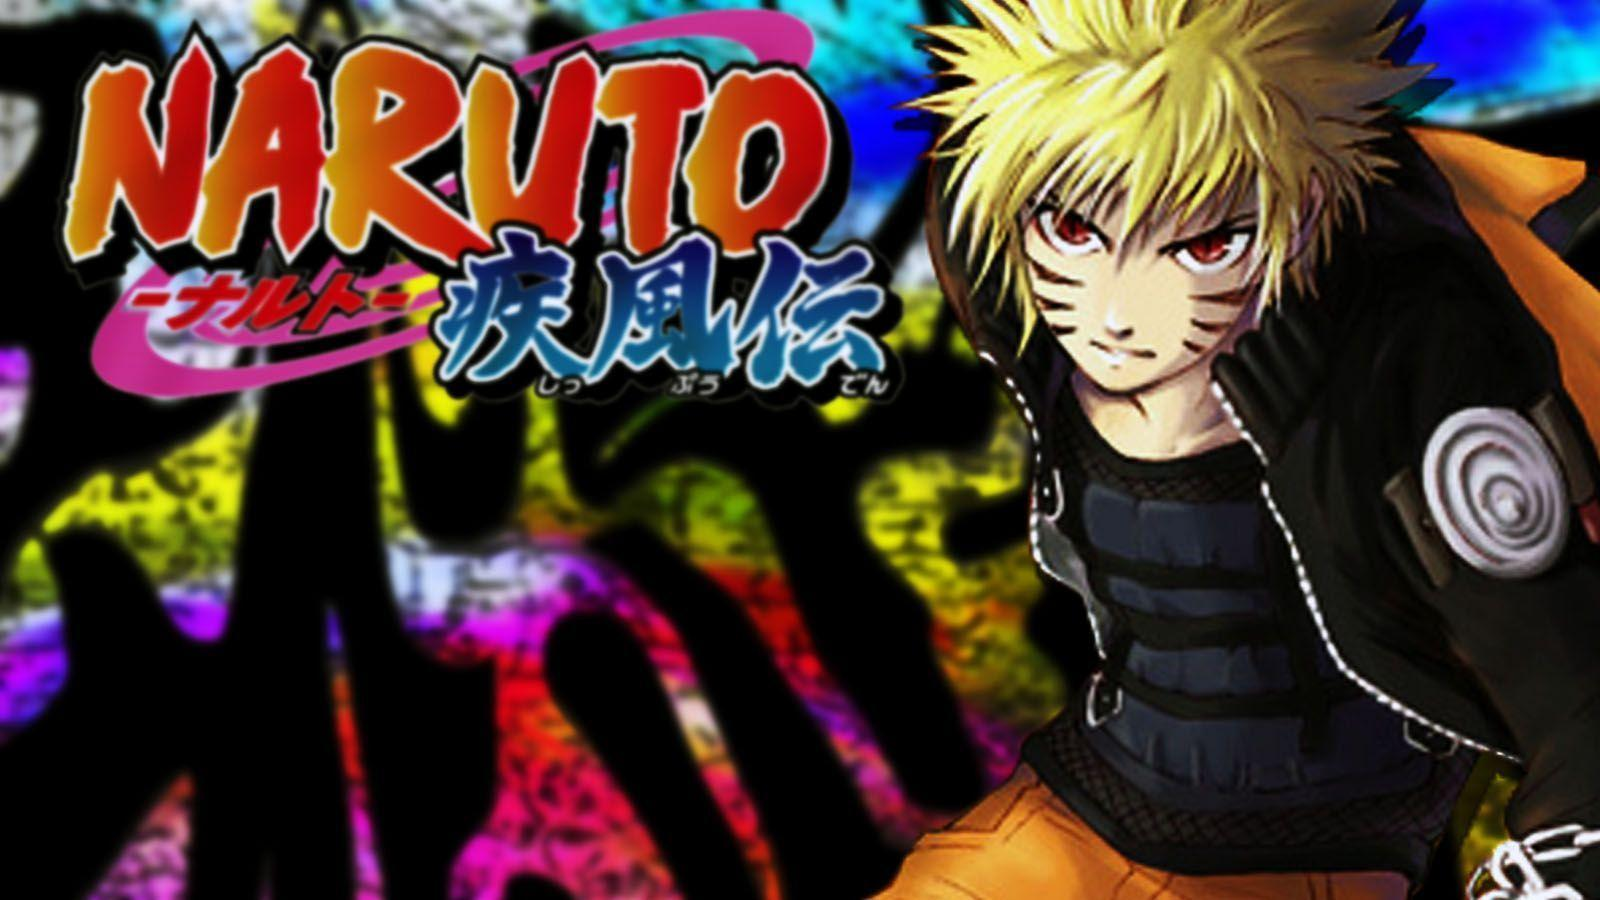 Download Wallpapers Naruto Hd For PC